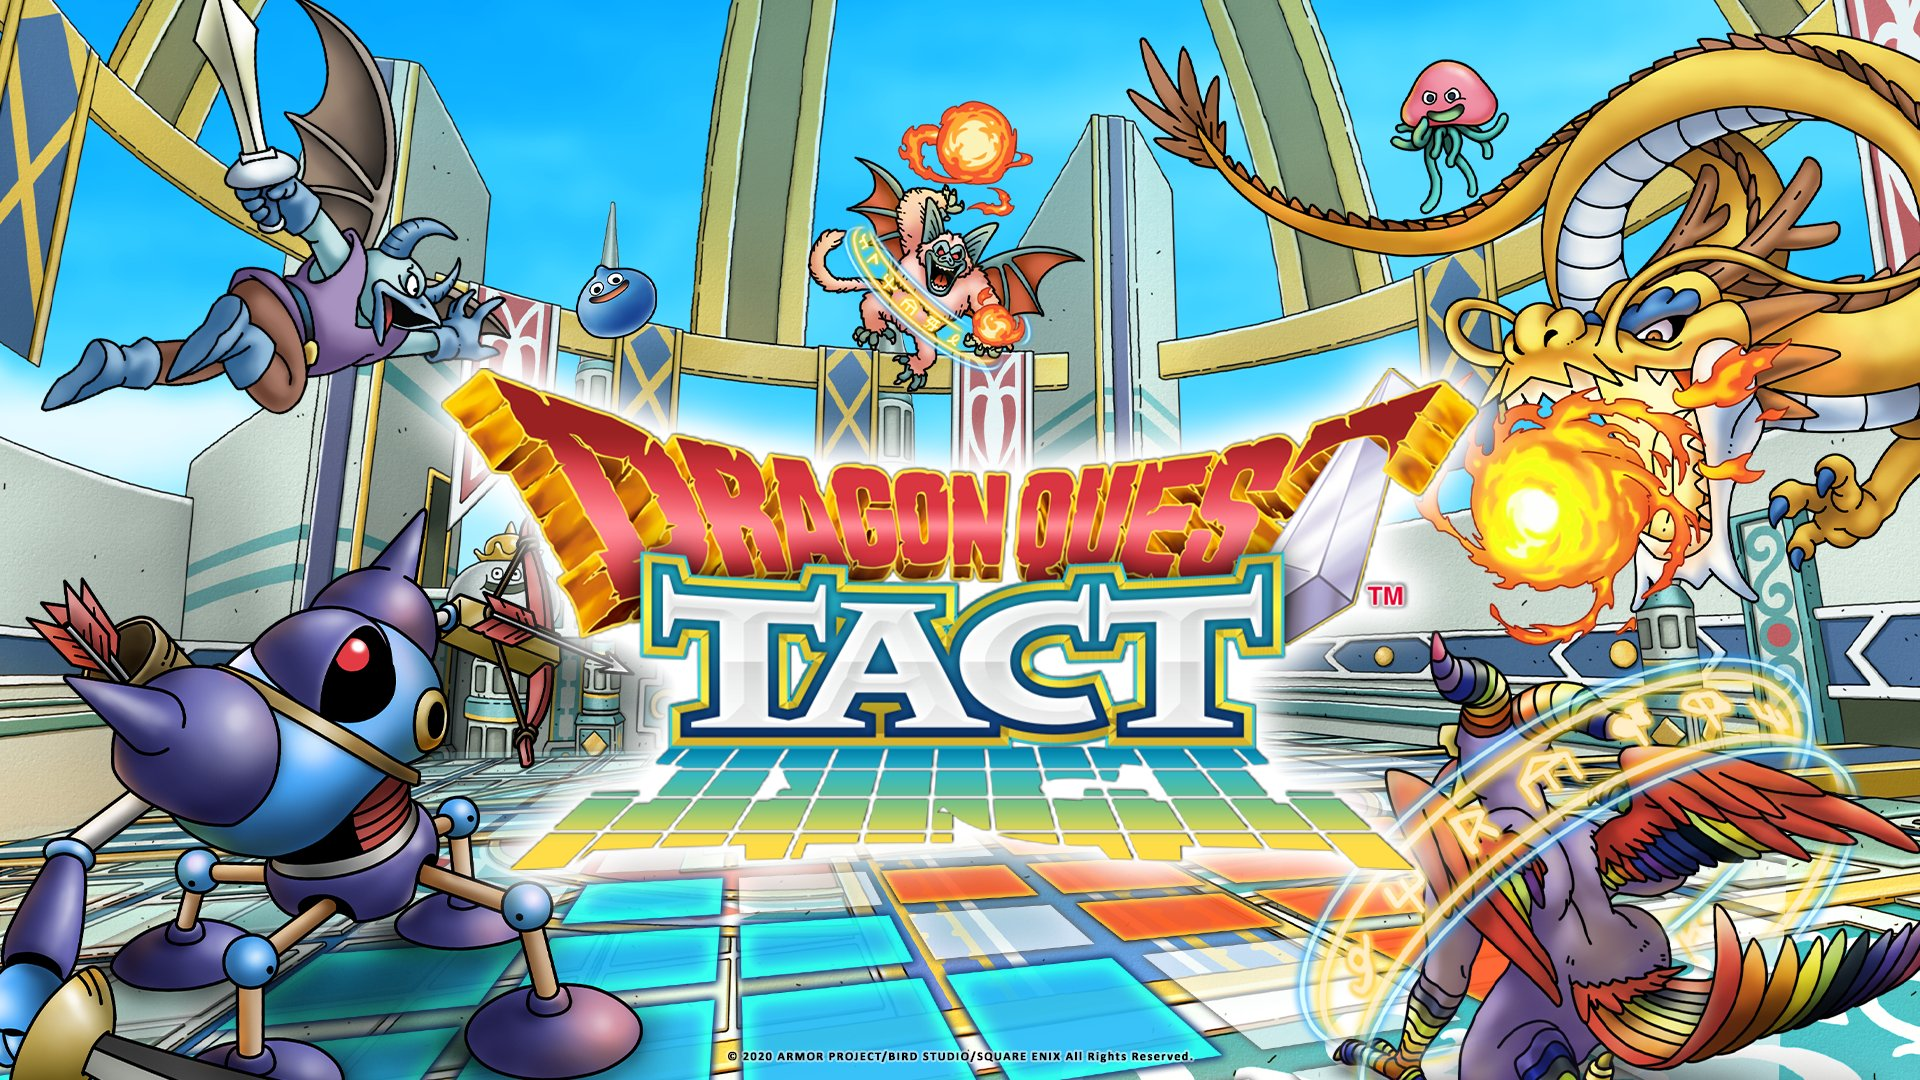 Dragon Quest Tact Released Worldwide